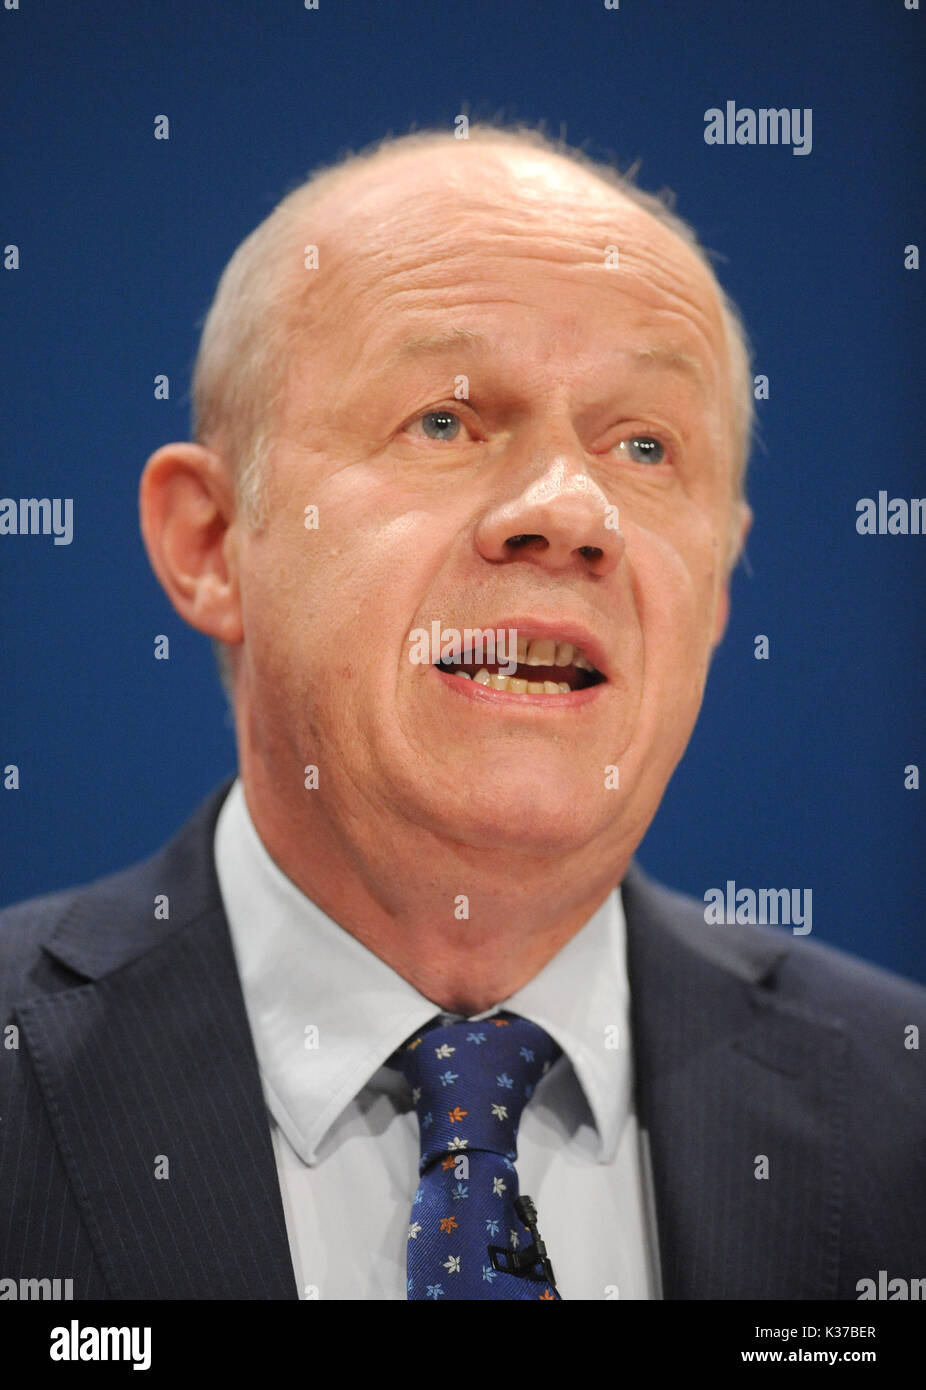 Photo Must Be Credited ©Alpha Press 079965 04/10/2016 Damian Green Conservative Party Conference 2016 At The Birmingham ICC - Stock Image